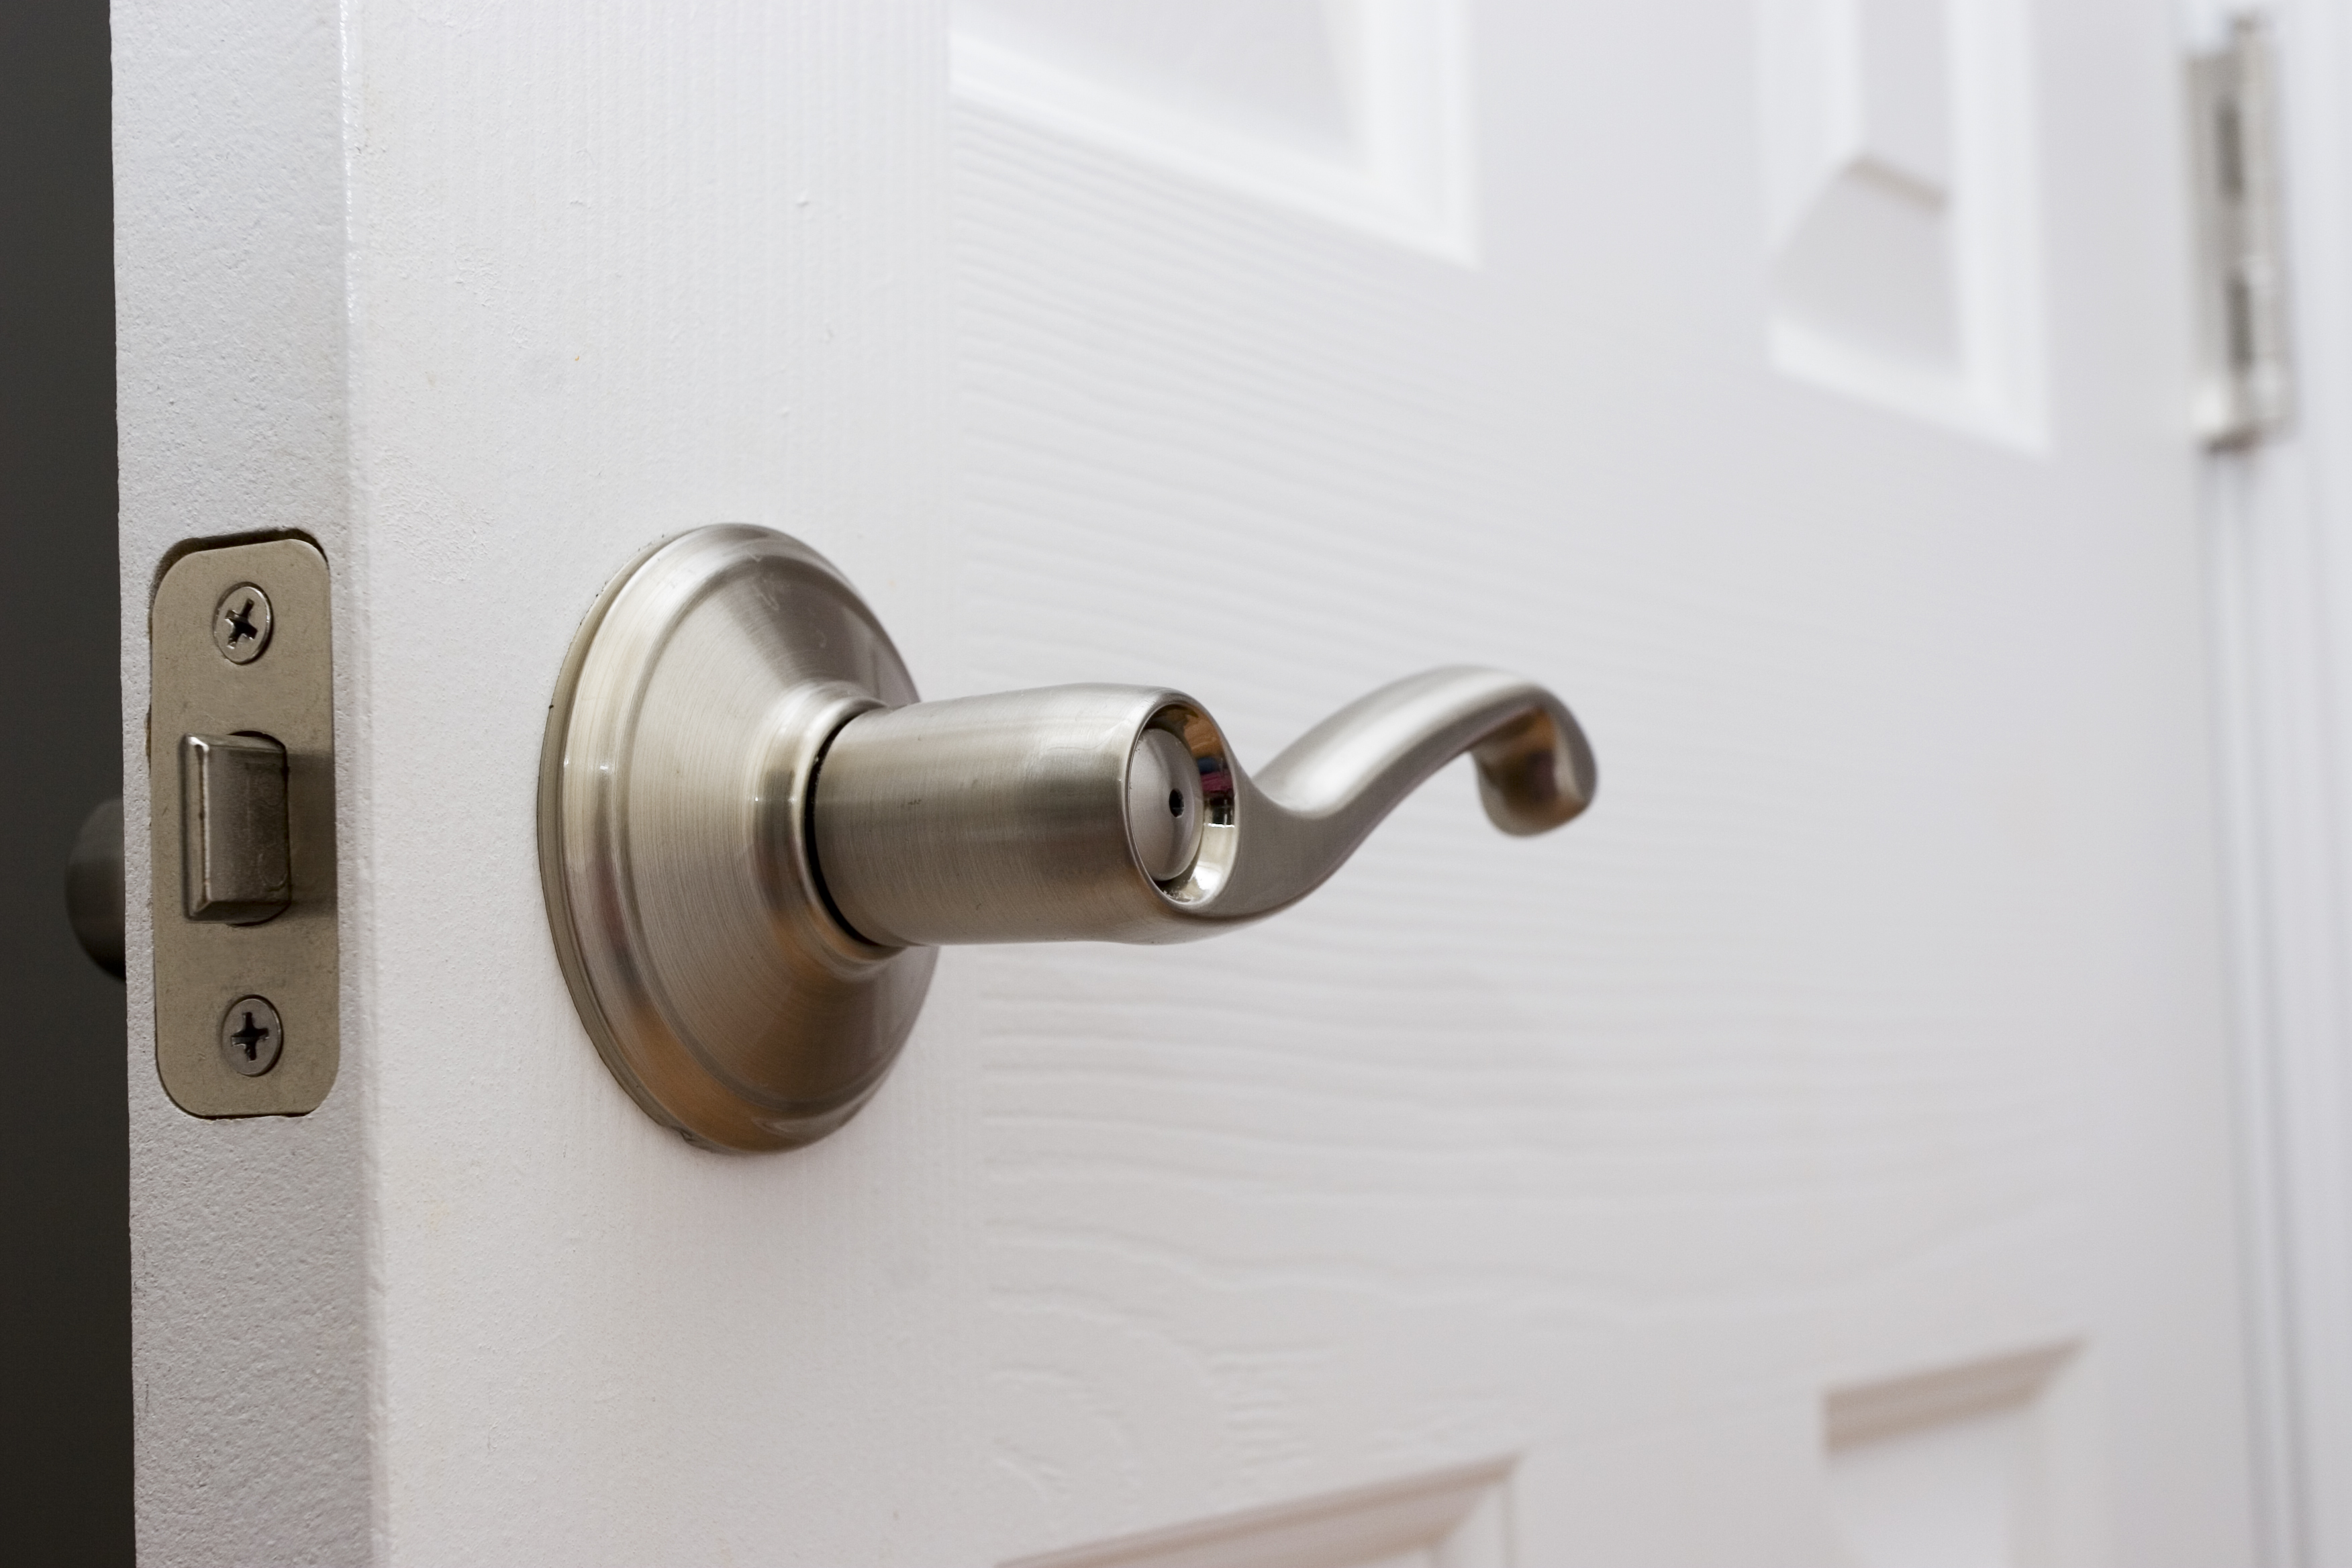 How to Remove the Faceplate From a Lever Door Knob | Home Guides